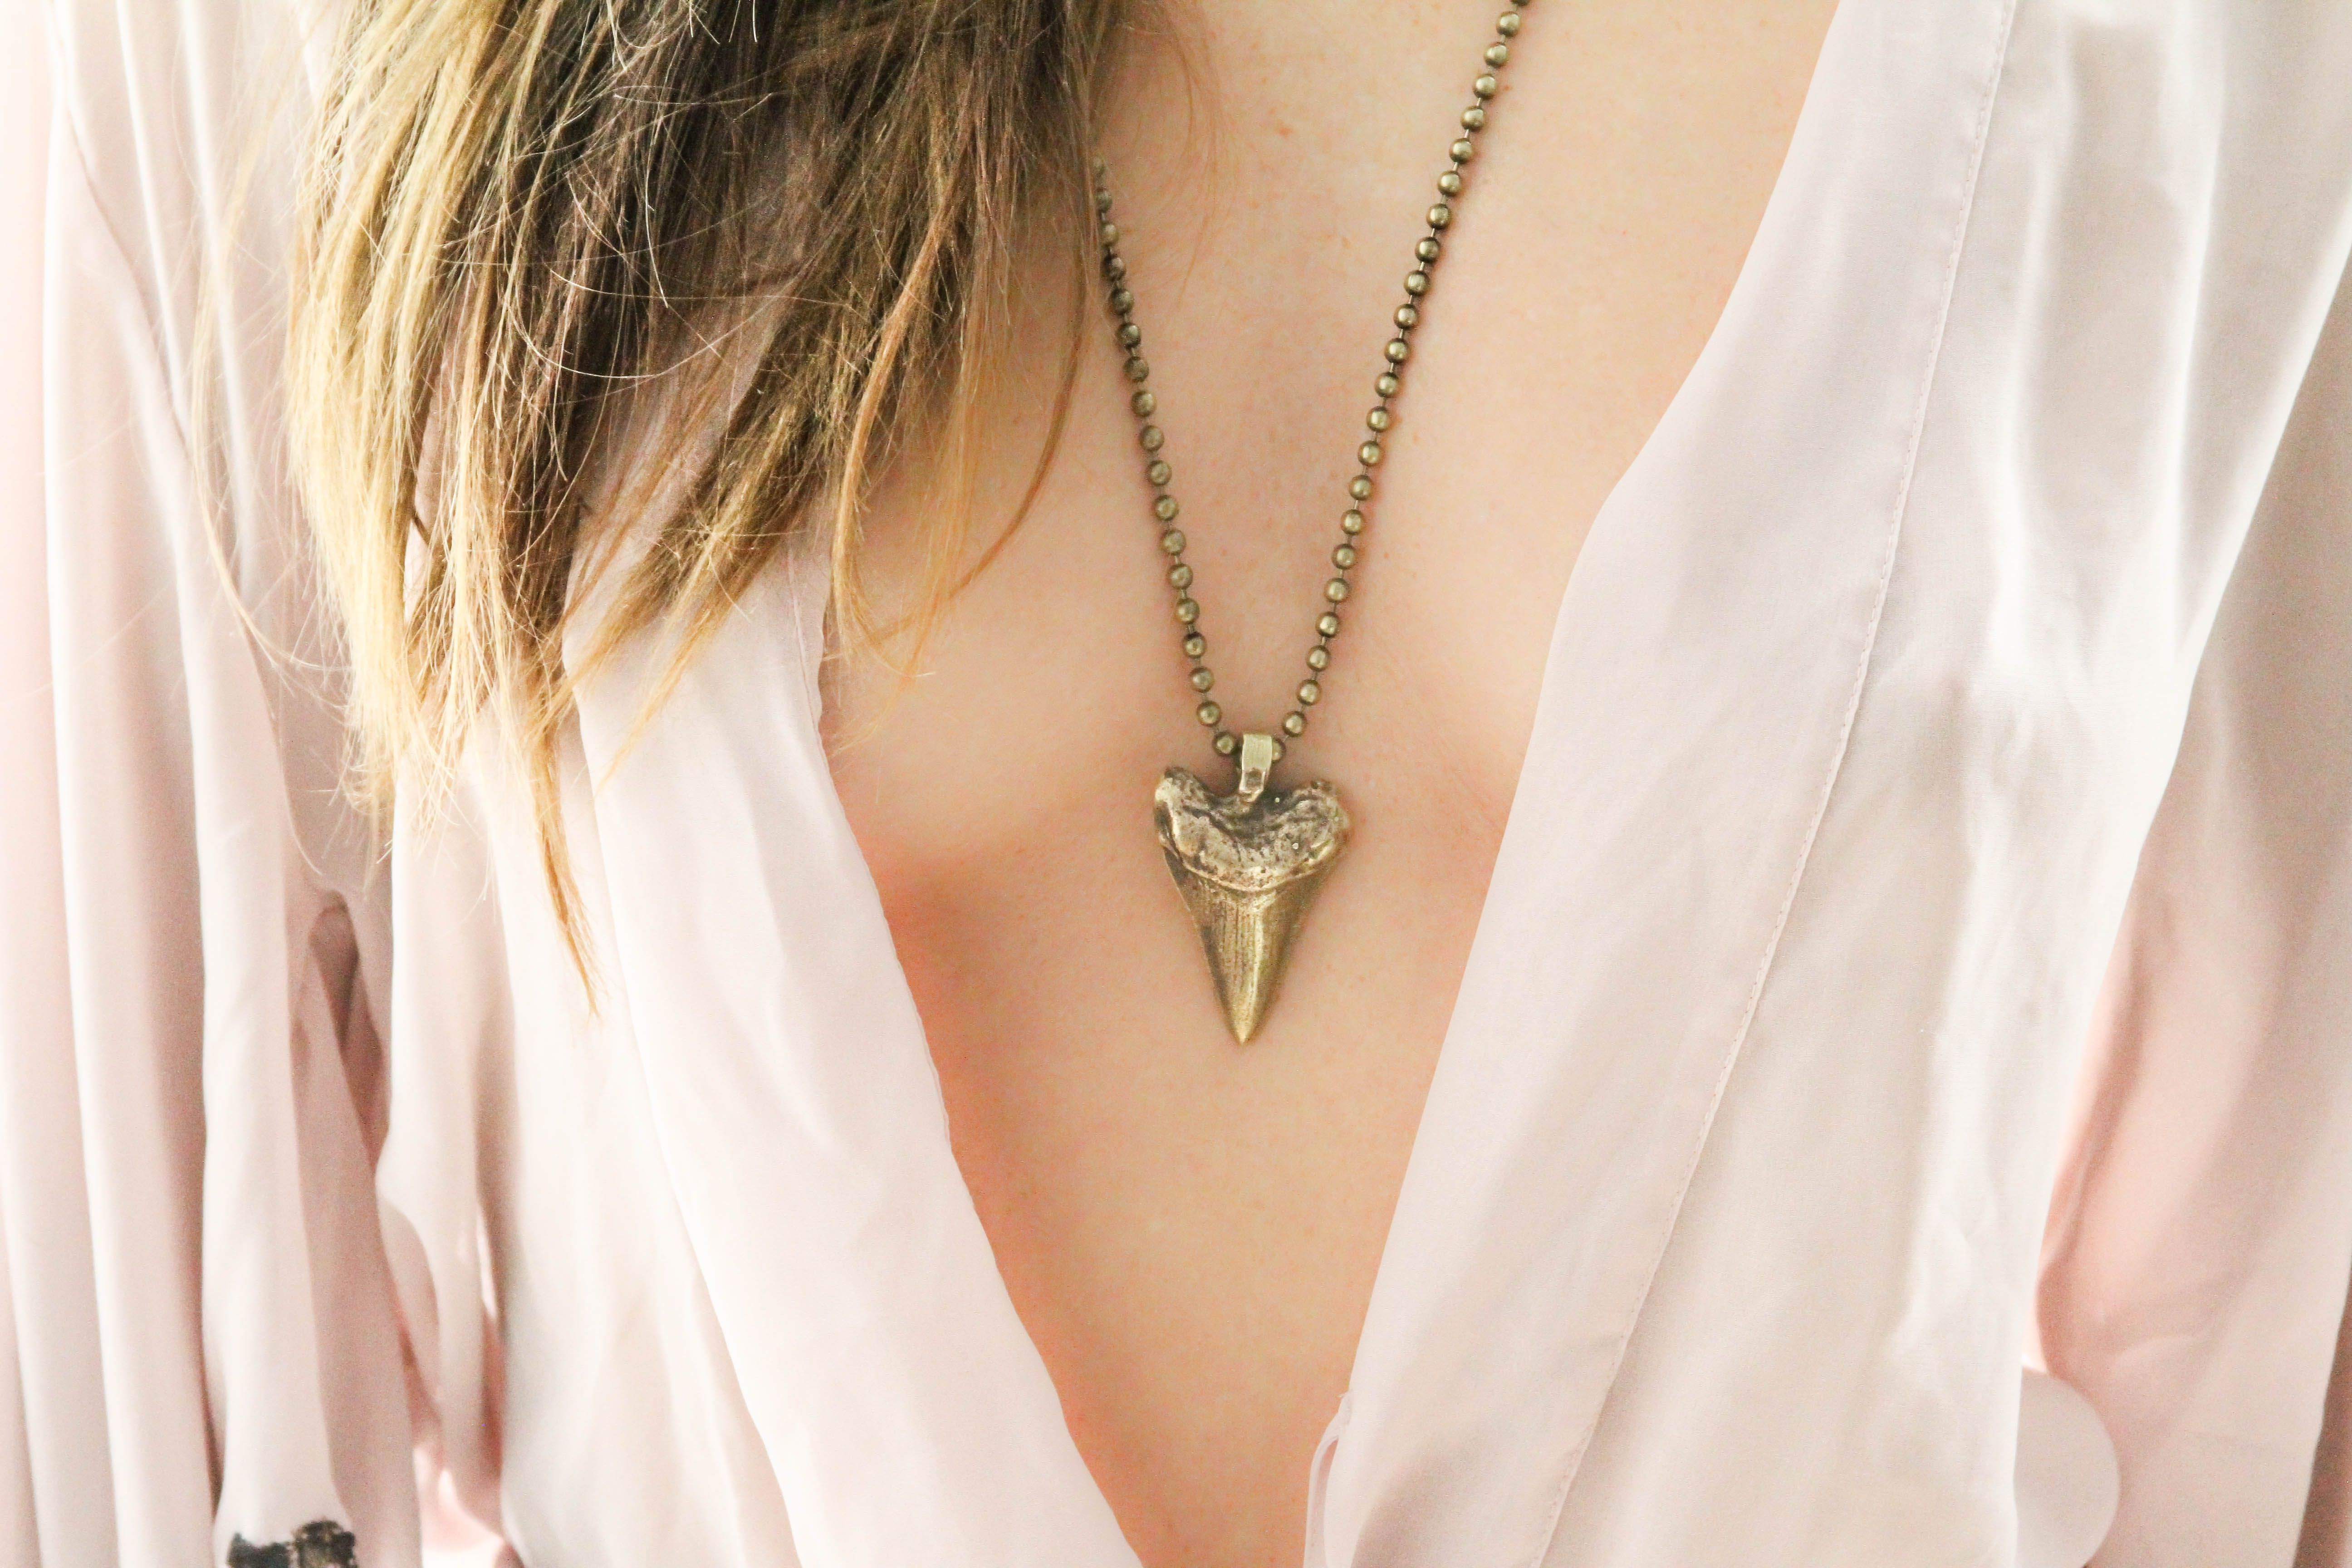 """""""Jaws"""" #fashion #style #swag #street #jewelry #necklace #badass #weapons #brass #bullets #jaws #sharktooth"""